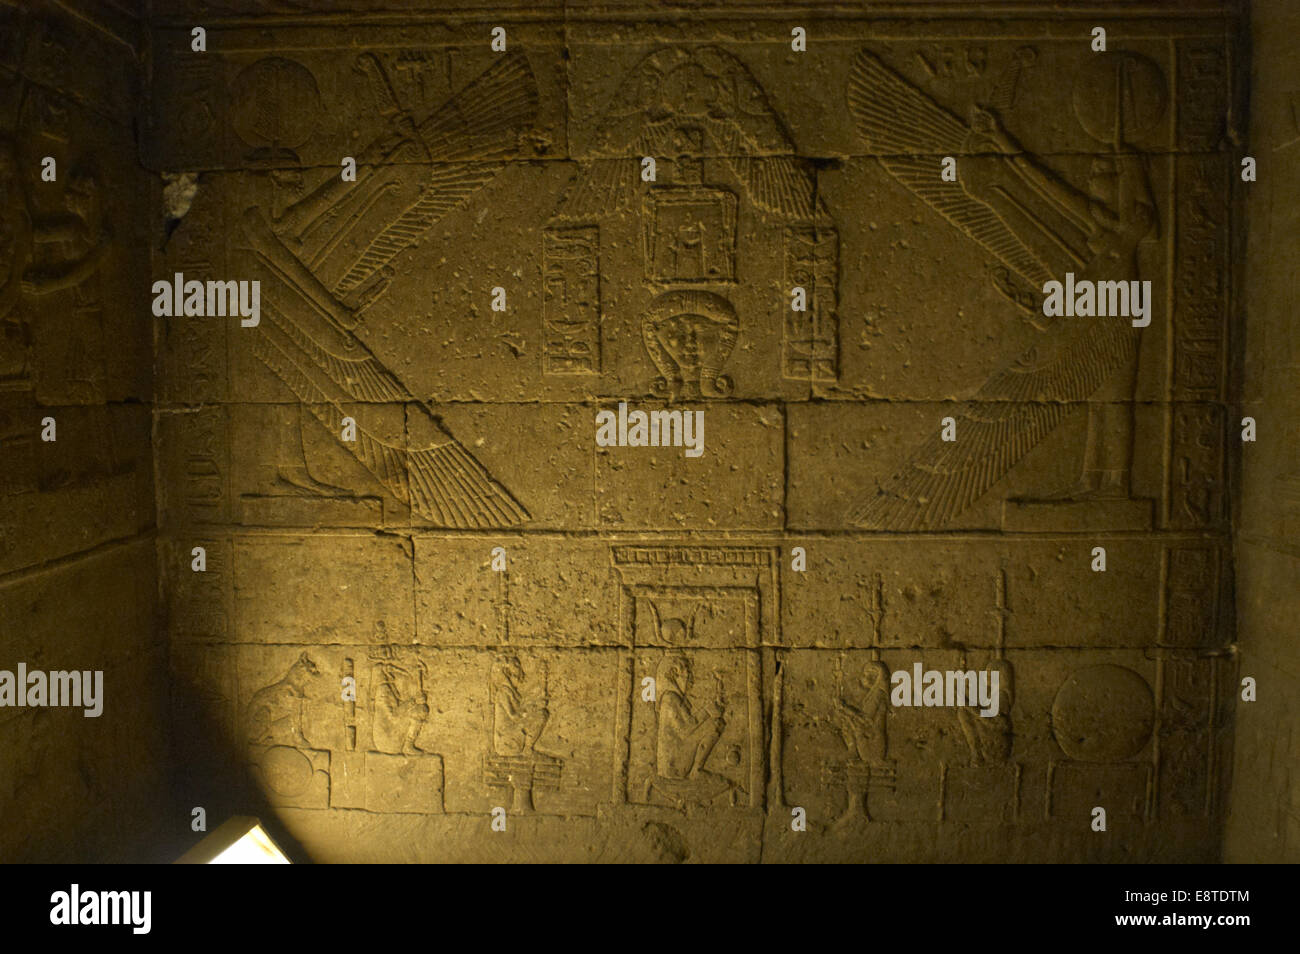 Egypt. Dendera. Hathor Temple. Cult to the goddess Hahtor next to Maat and isis. At the bottom, deity in a shrine. - Stock Image